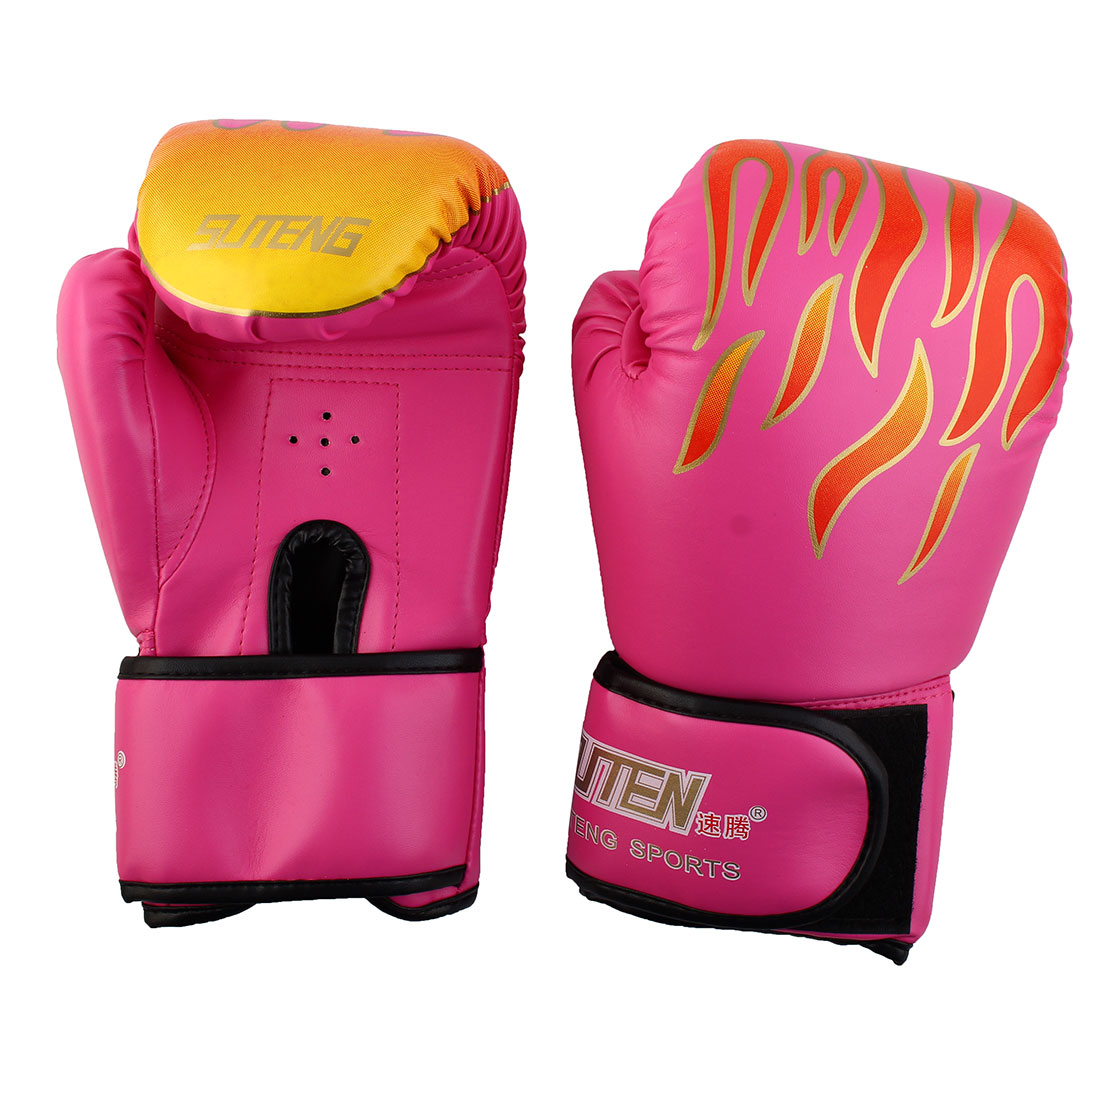 SUTENG Authorized Fire Print Boxing Gloves Sparring Punching Bag Fuchsia Pair